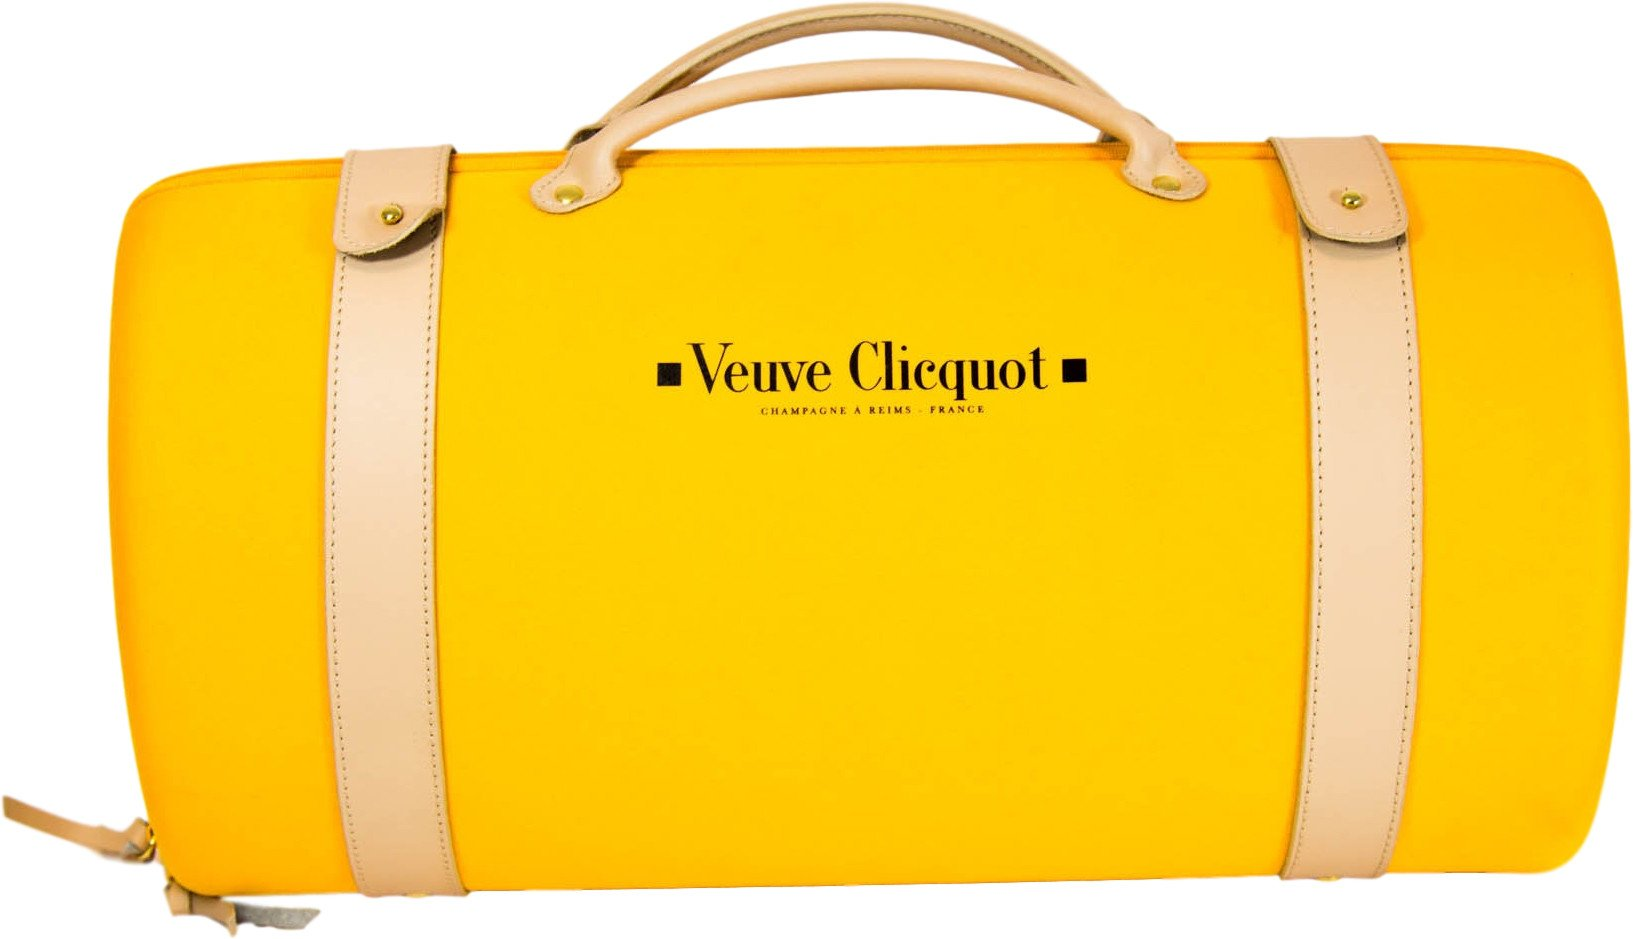 Carrier for Champagne Bottle and Two Glasses, Veuve Clicquot, France, 1990s